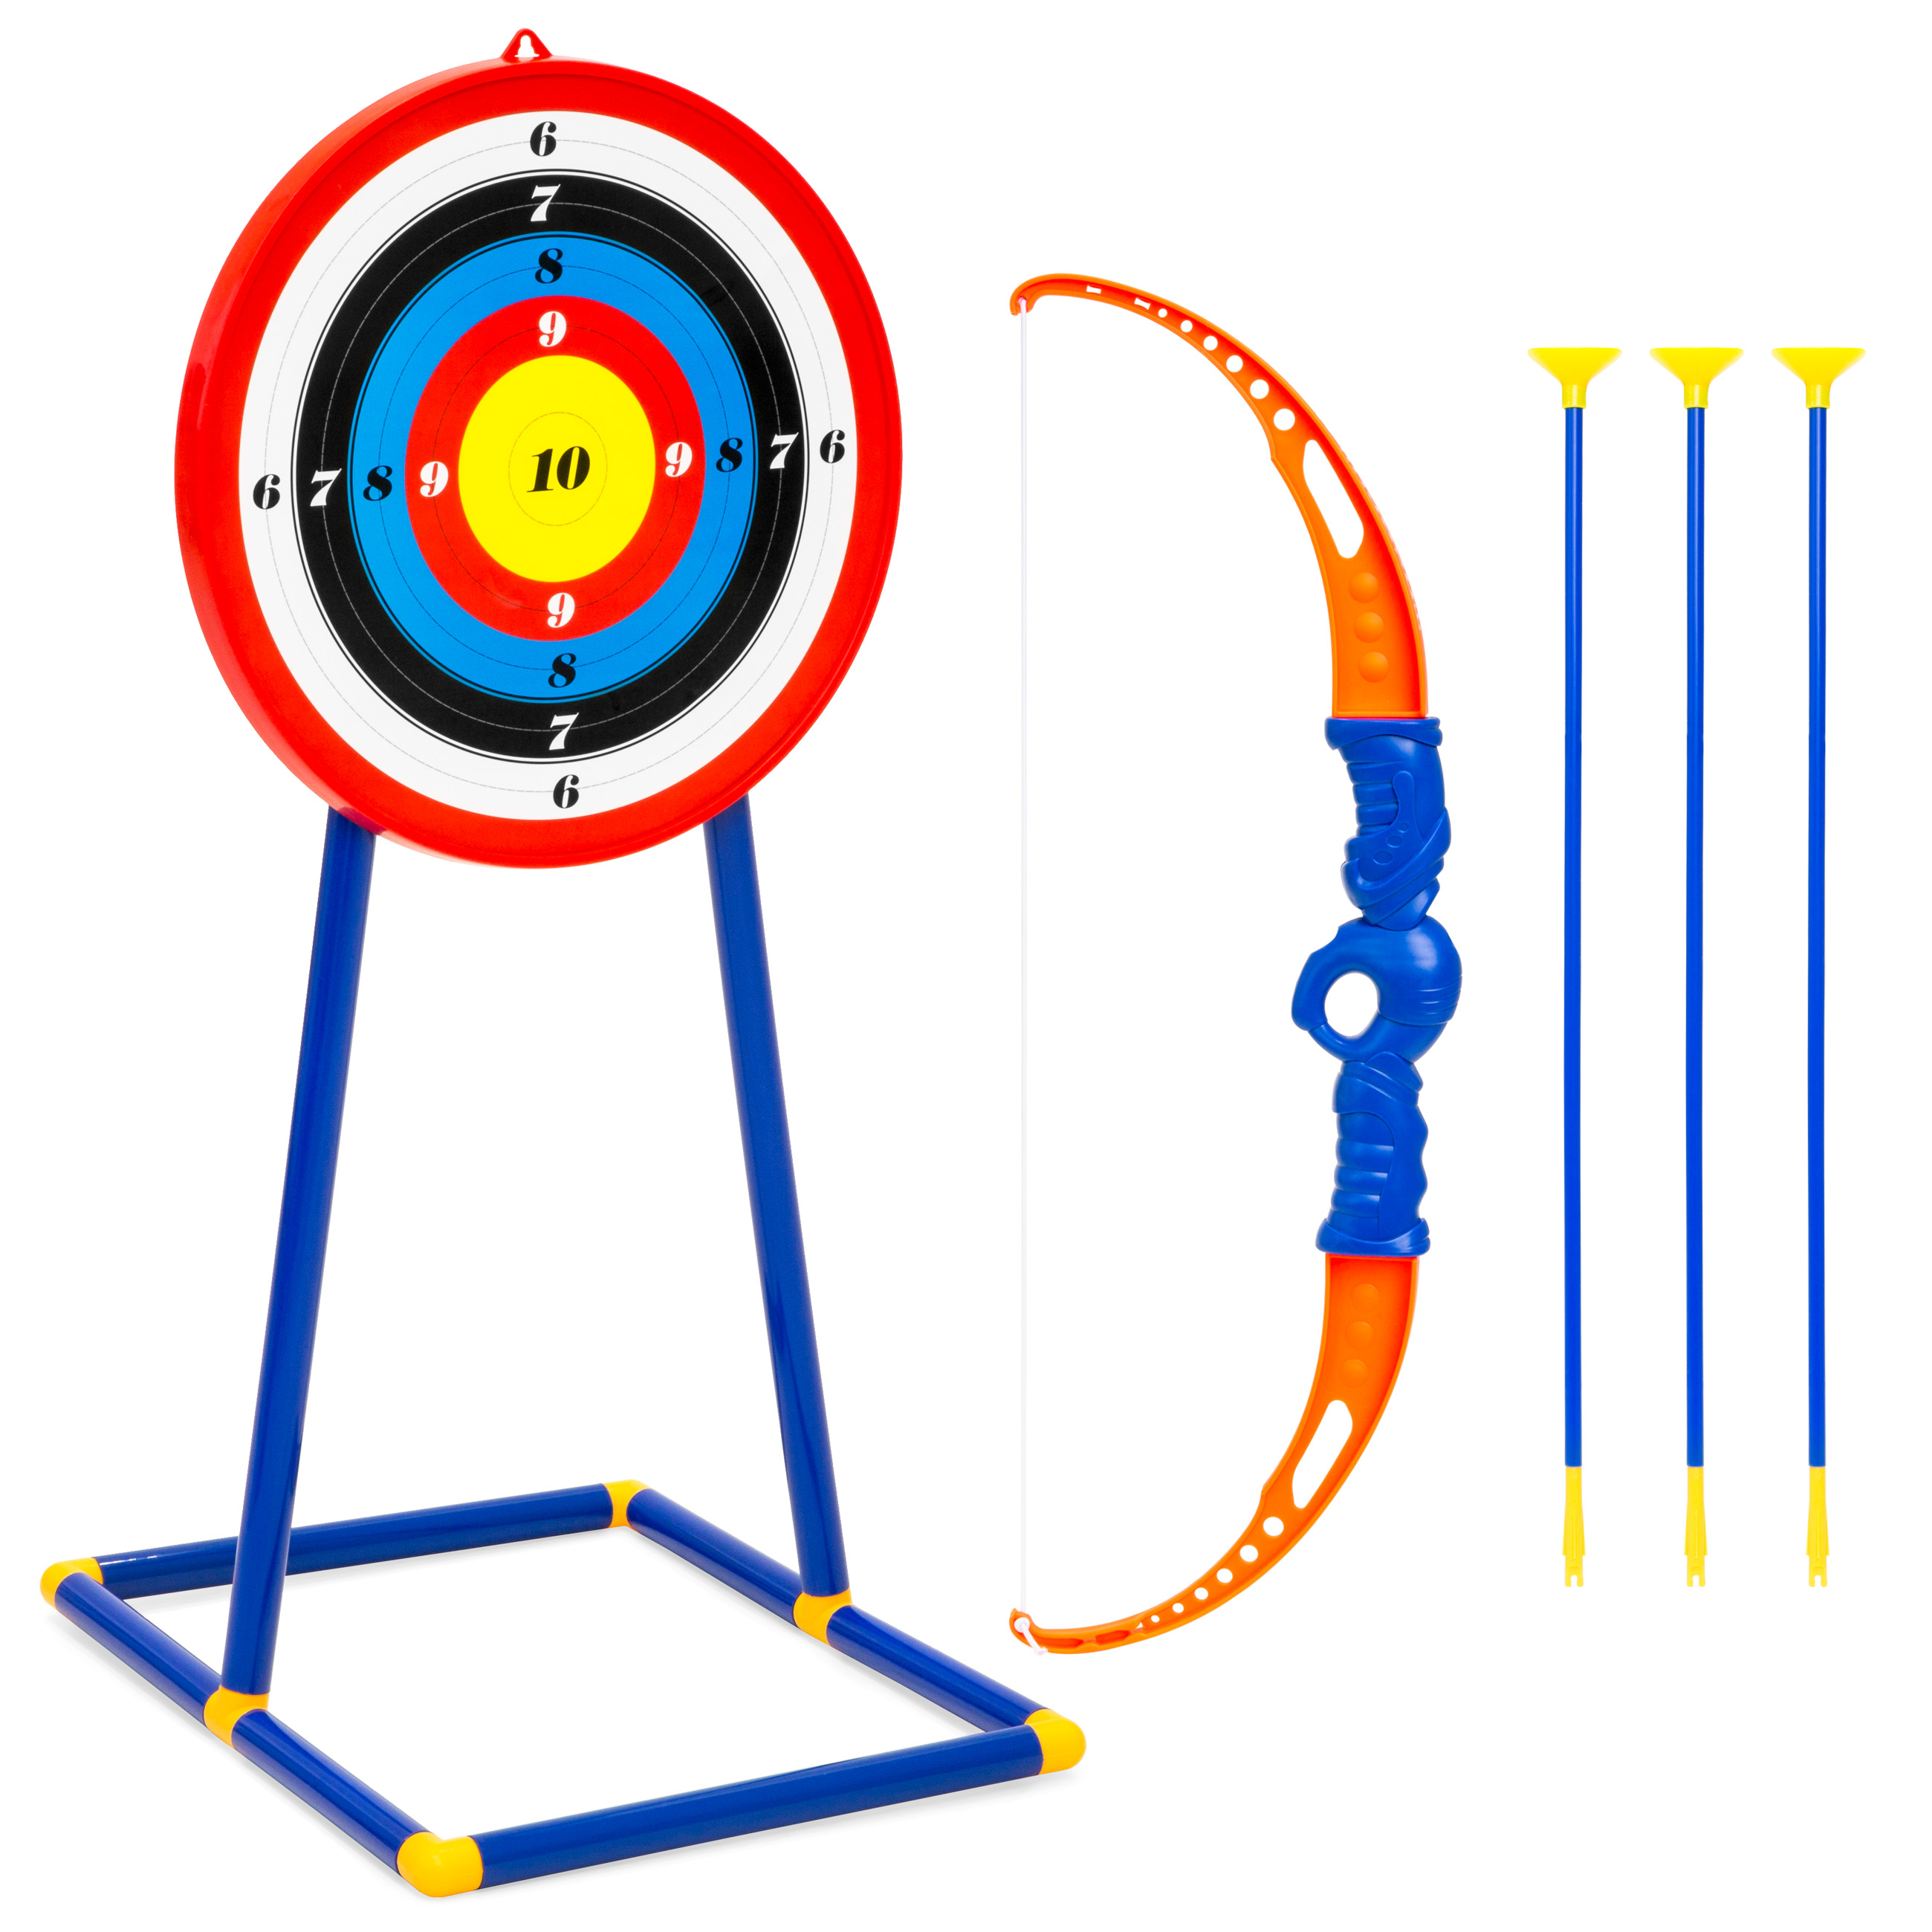 Best Choice Products Kids Toy Archery Set w/ Bow, Arrows, Bullseye Target - Multicolor